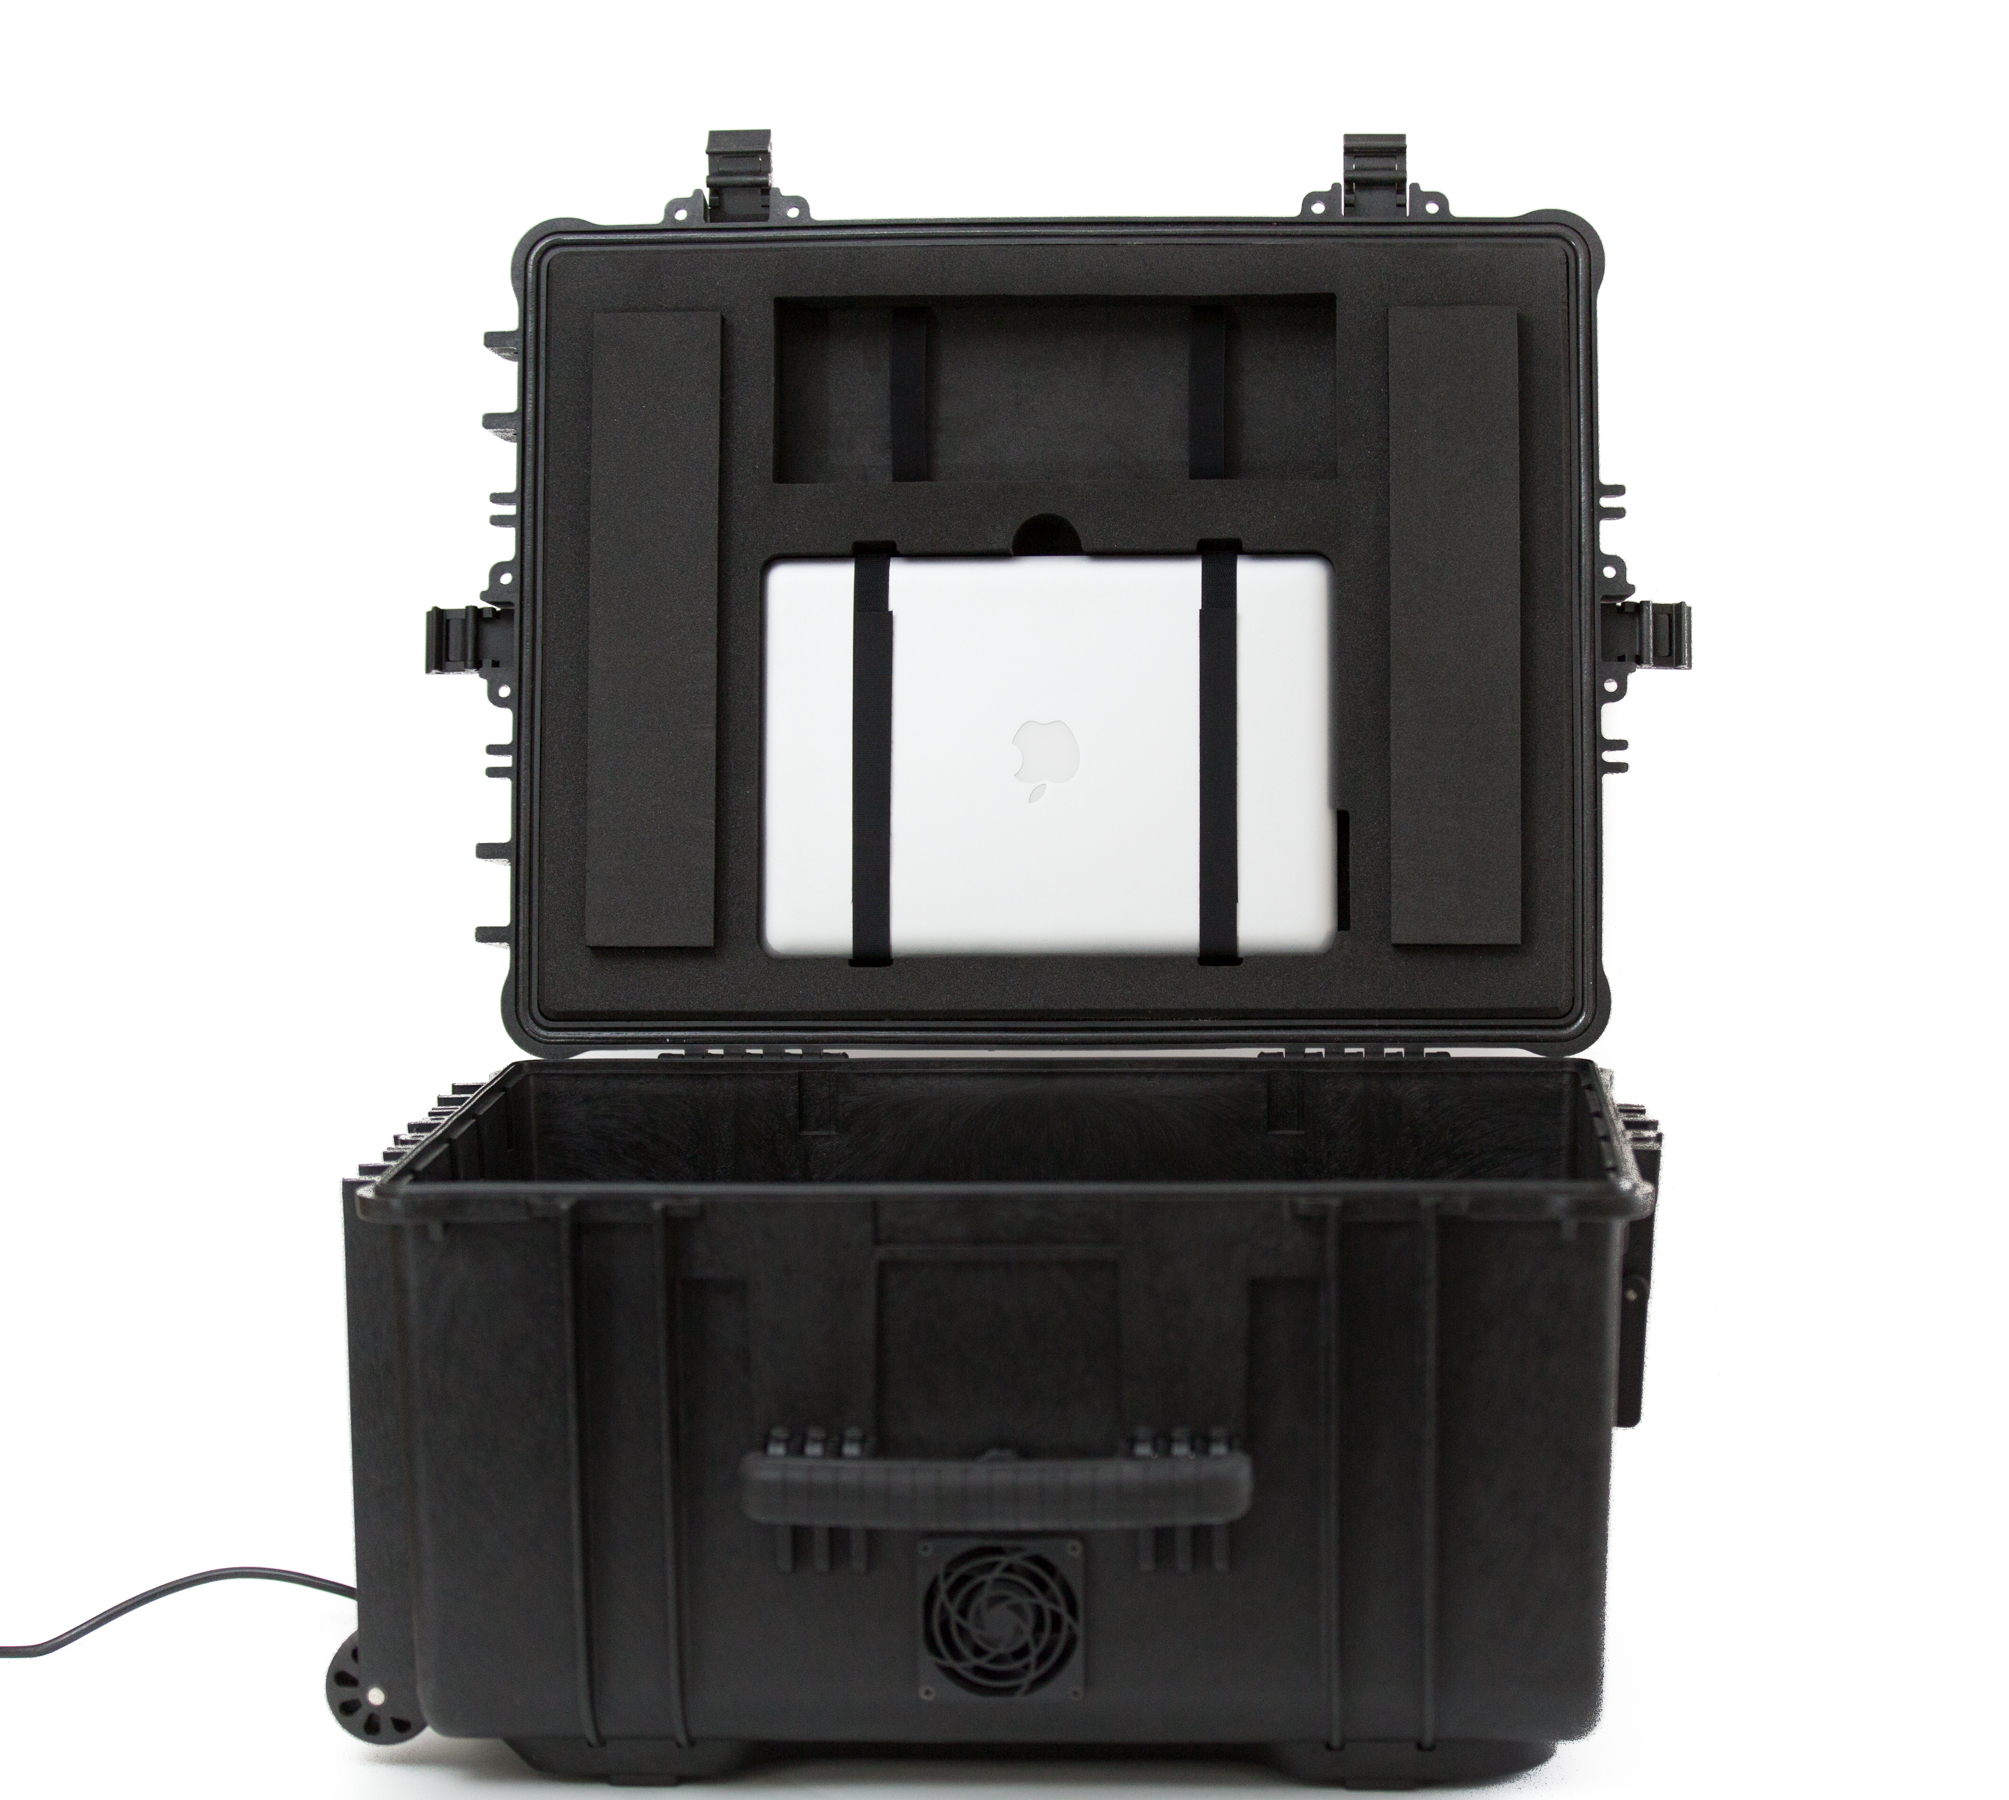 Chargebus 3250 charge and sync Case